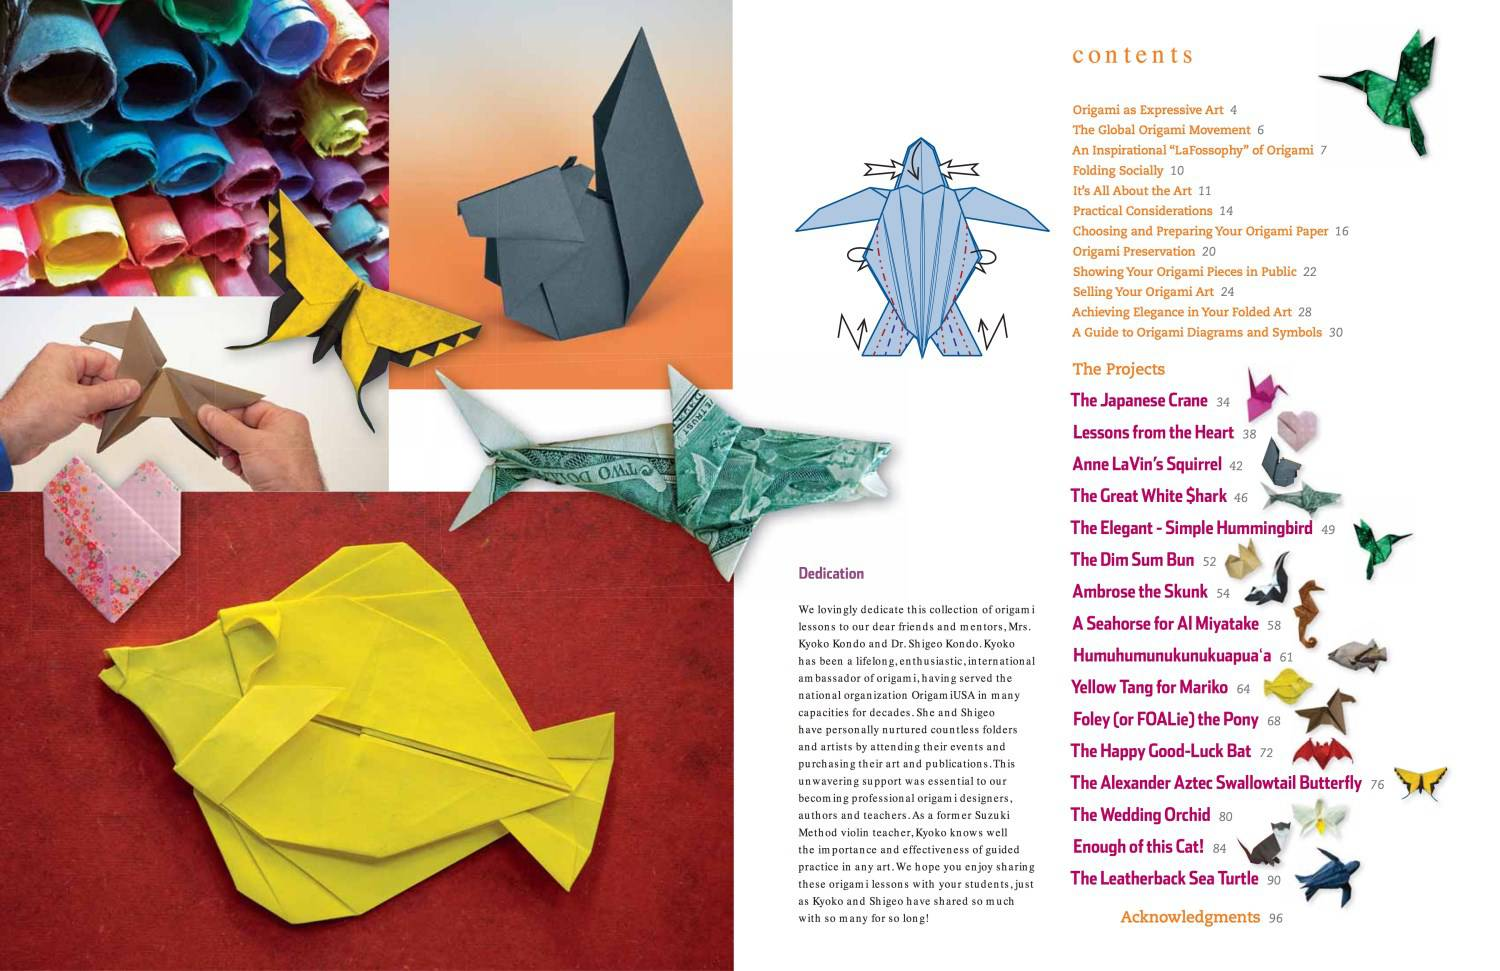 Lafosse Alexanders Essential Book Of Origami The Complete Guide Science Fiction Diagrams Description